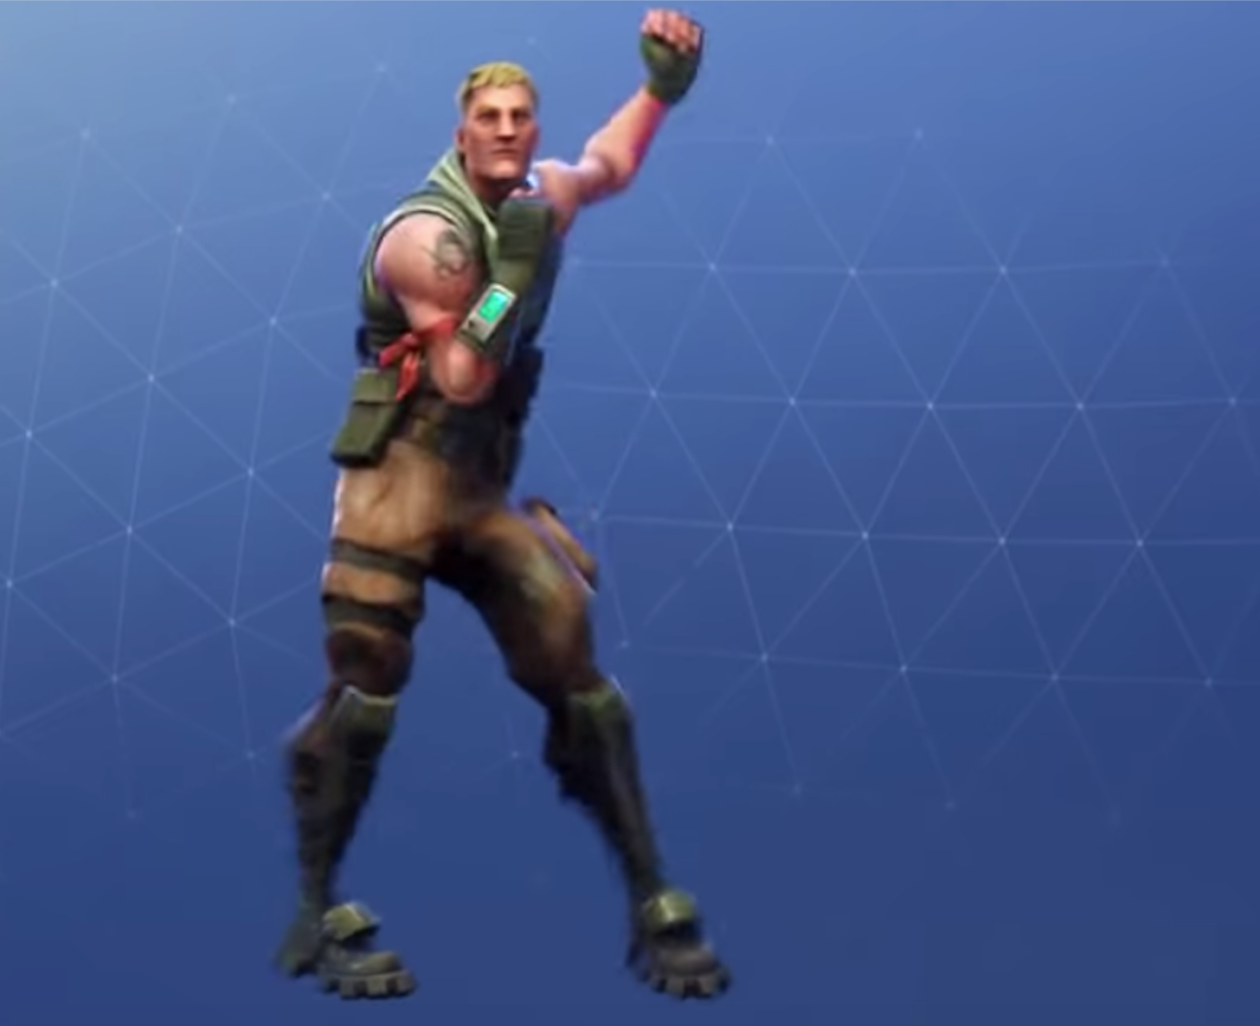 fresh prince star suing makers of fortnite for stealing his carlton dance moves for video game - star dance fortnite